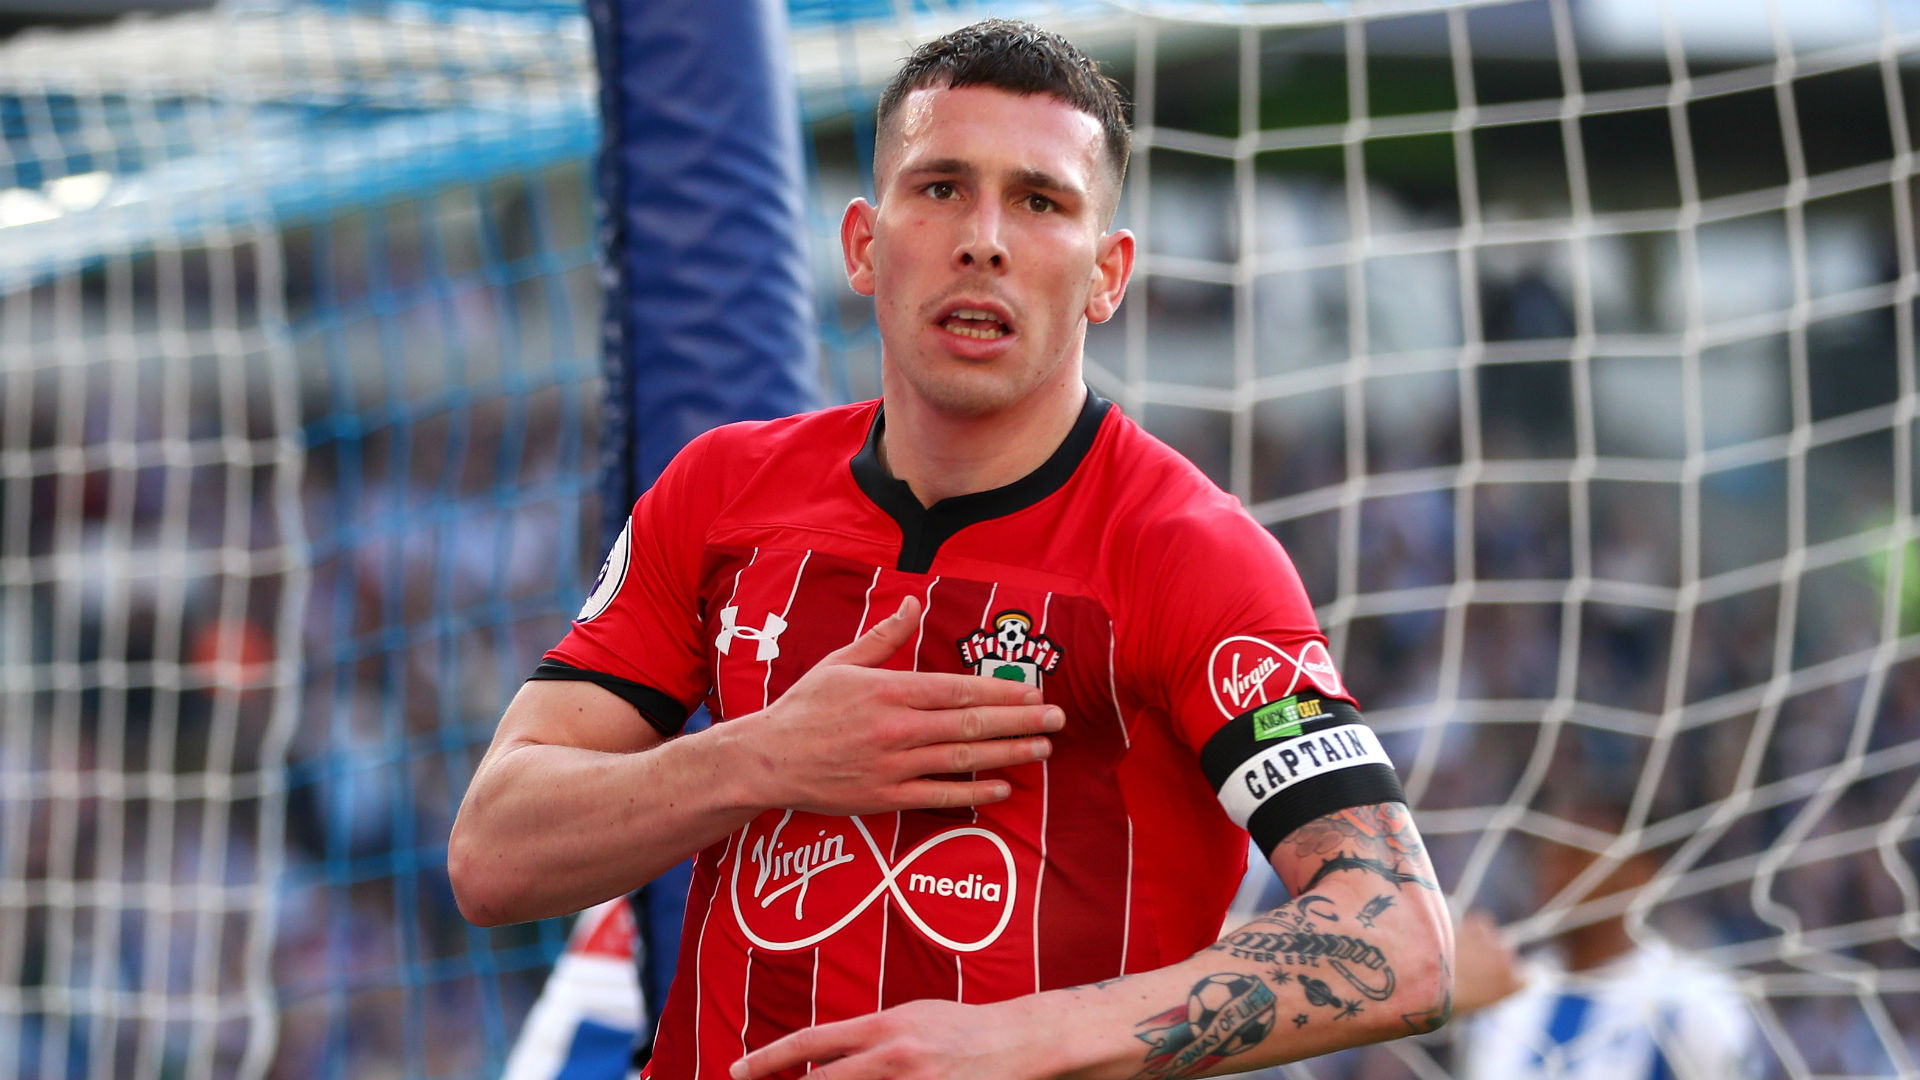 Brighton and Hove Albion 0 Southampton 1: Hojbjerg hands Saints deserved win